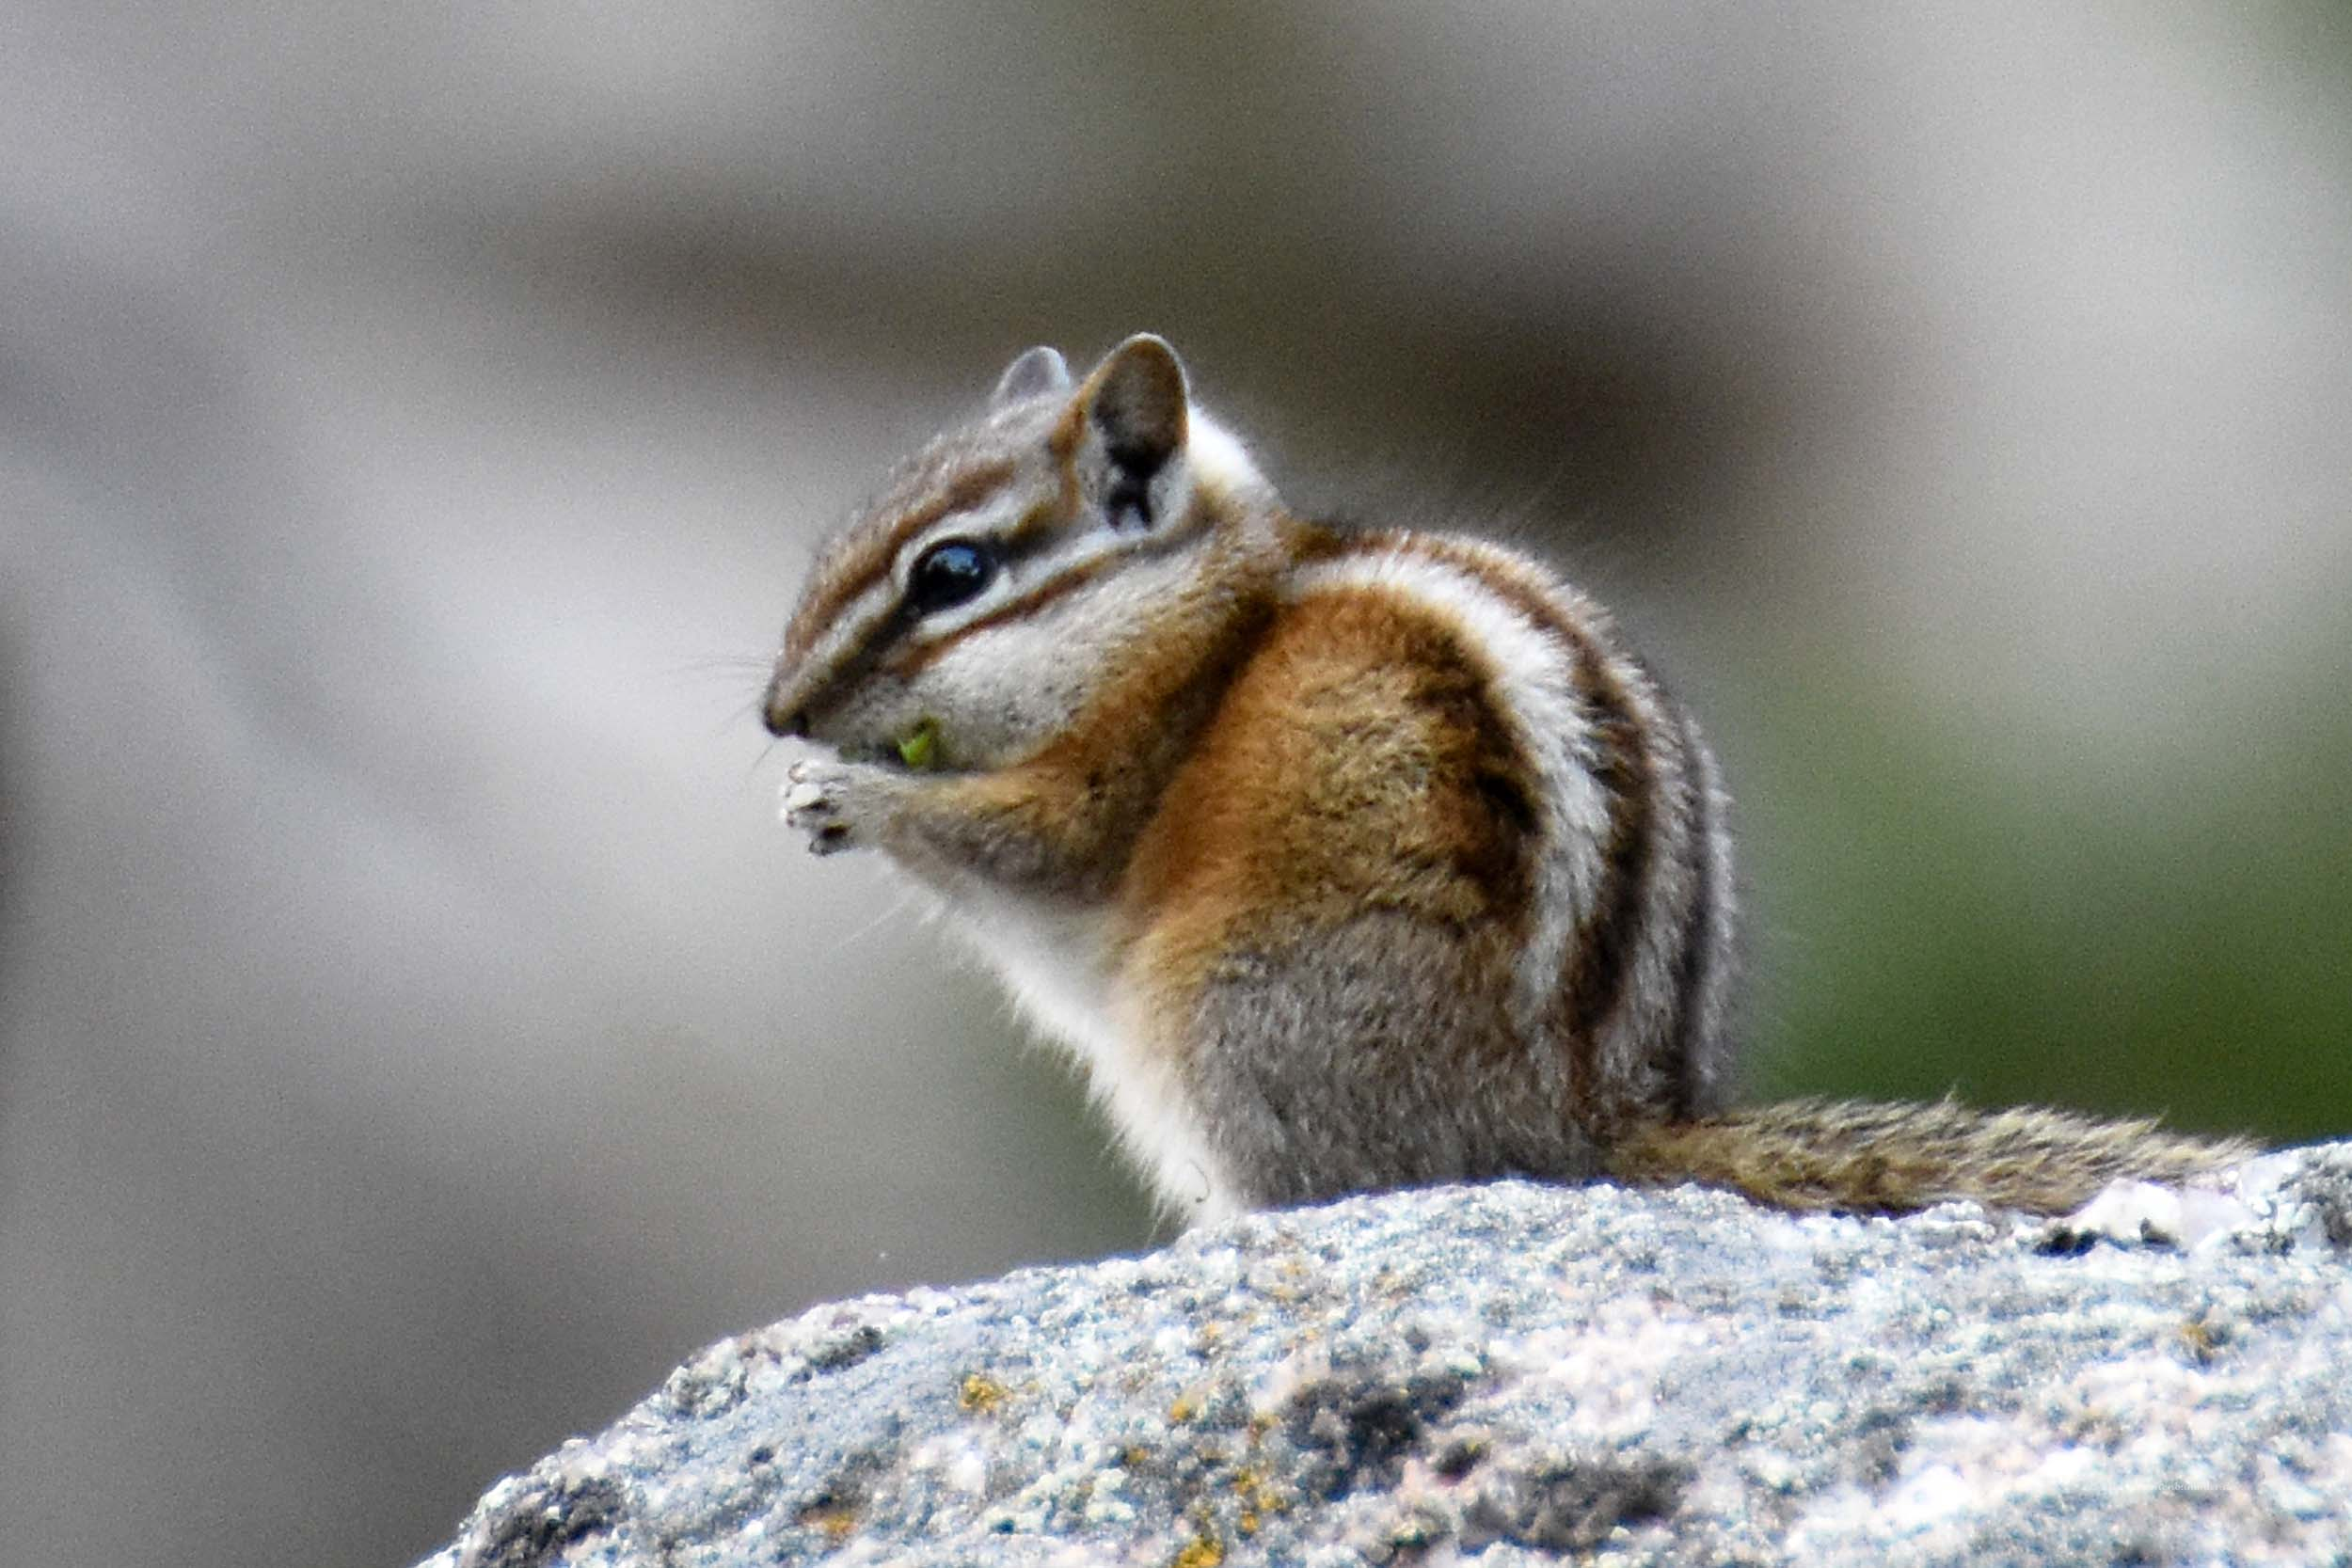 Chipmunk am Mount Rushmore